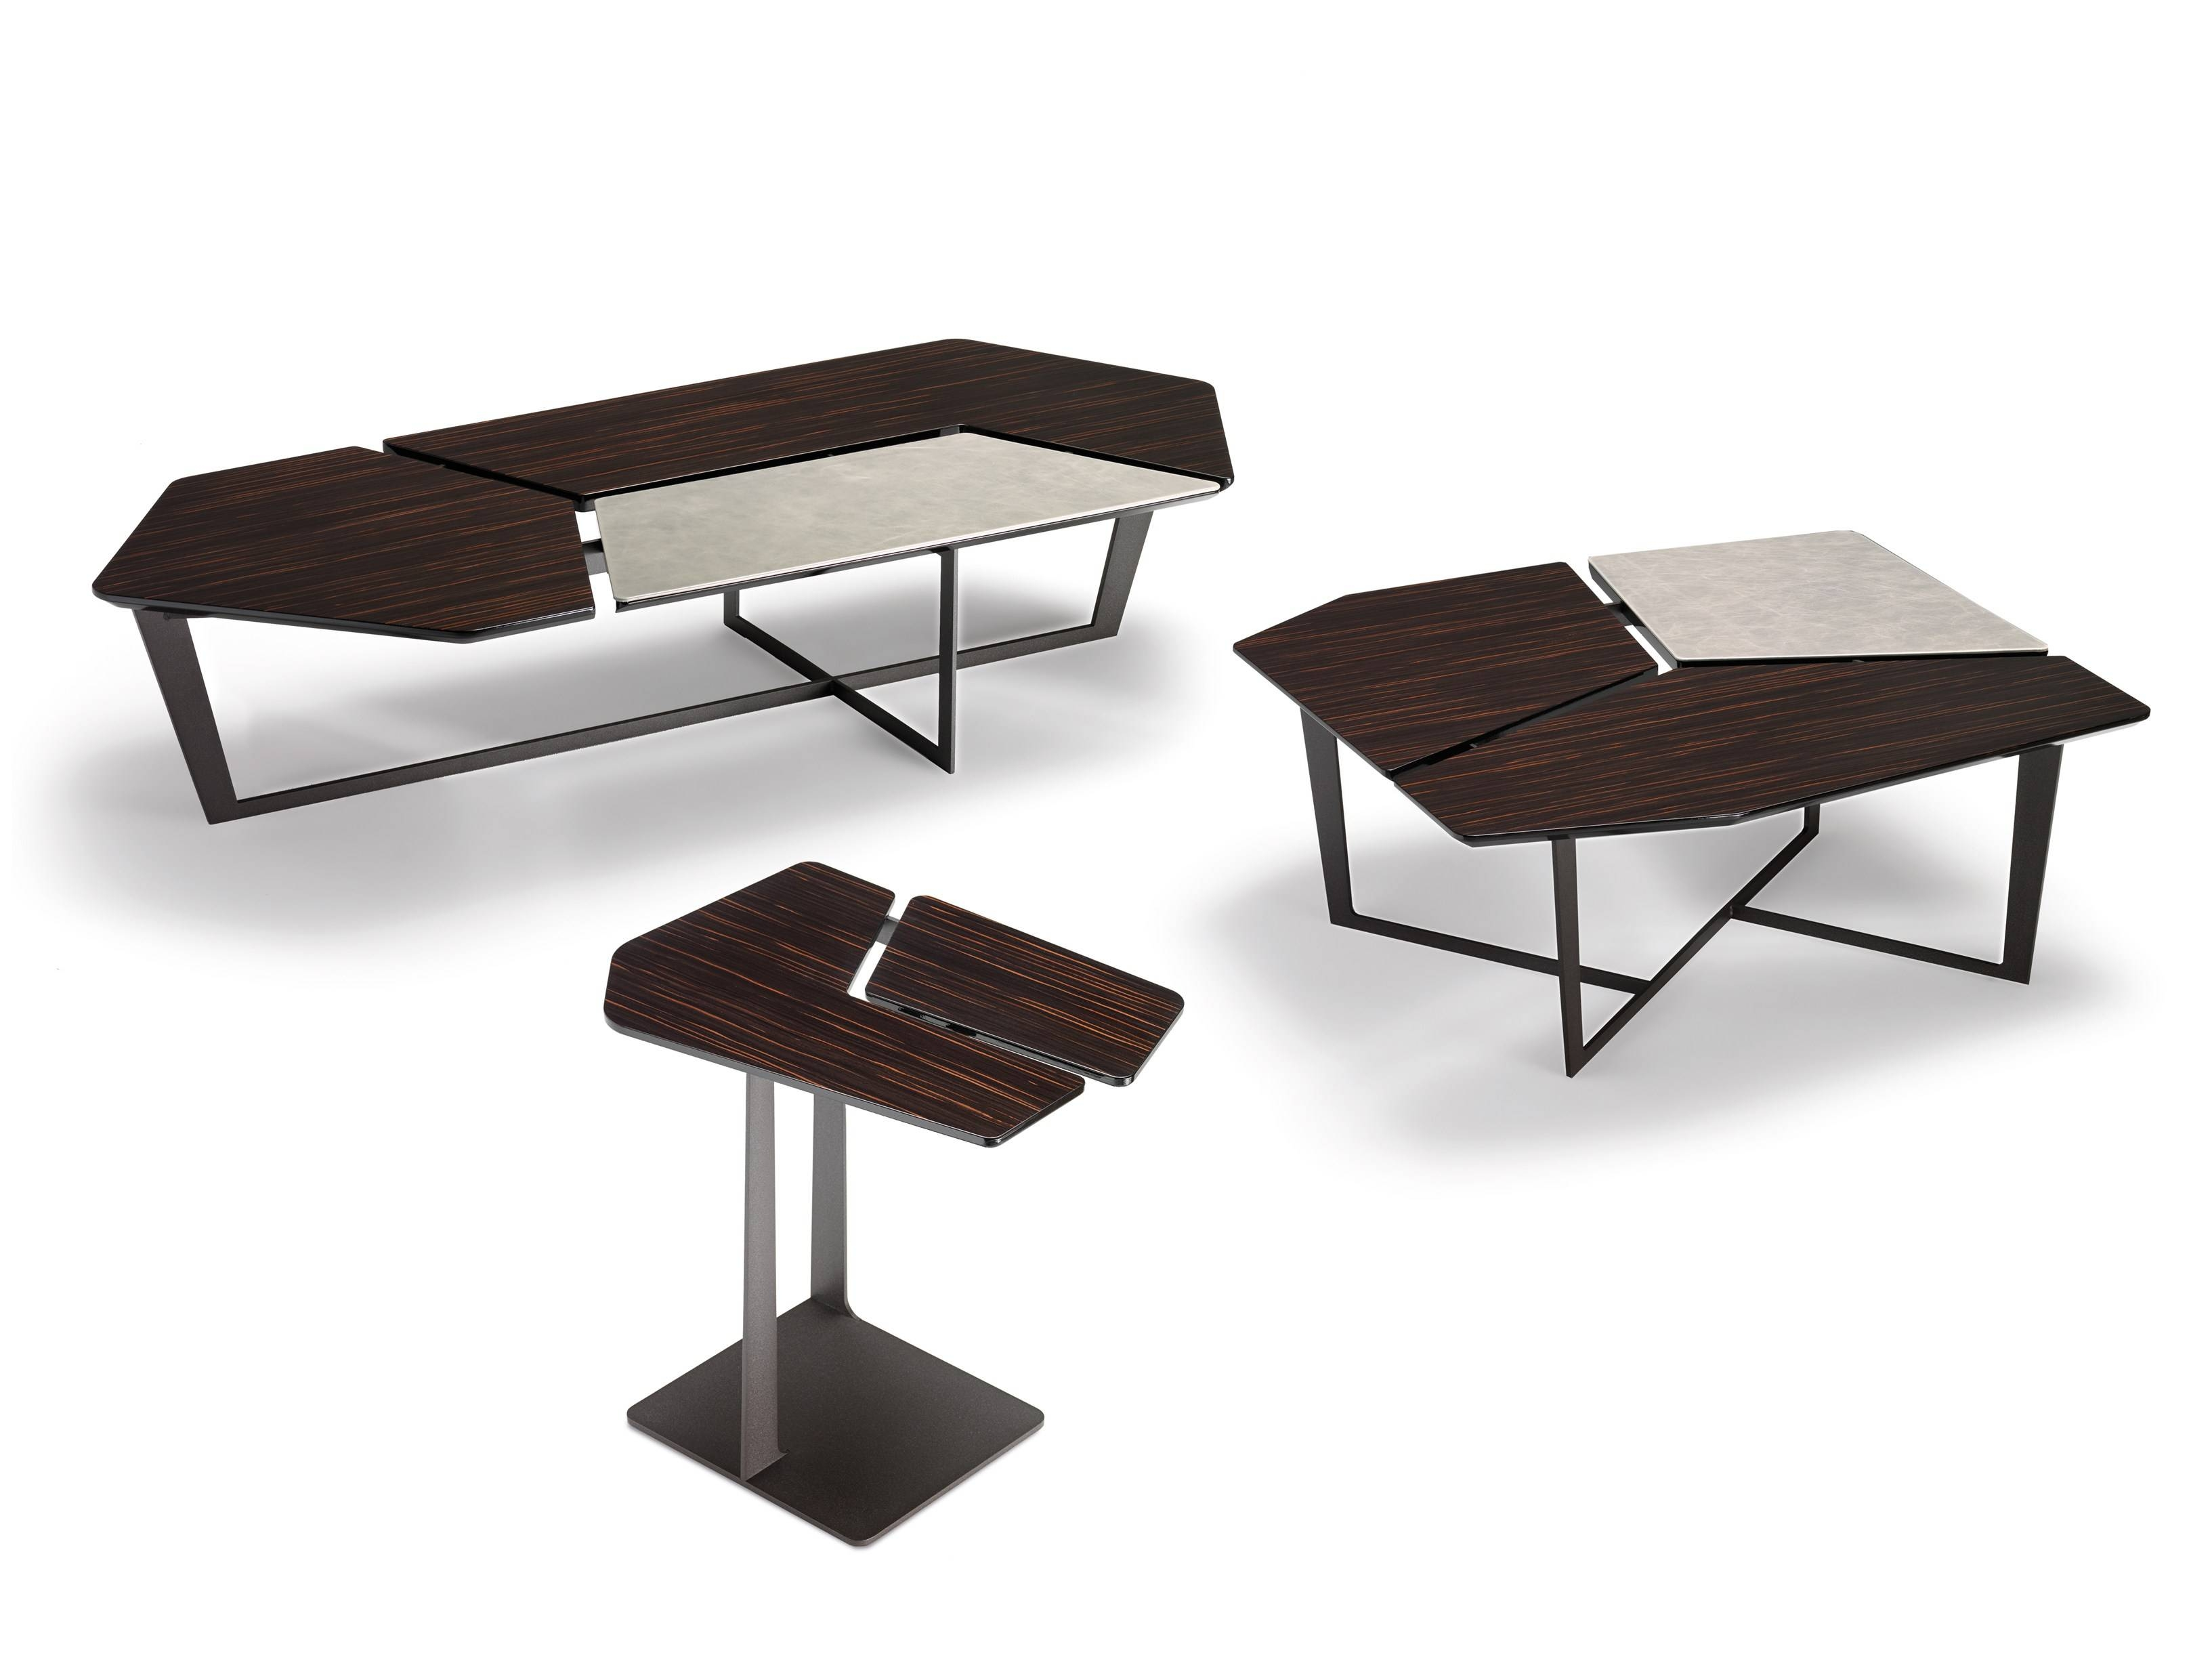 Nelson | Coffee Tablearketipo Design Studio Memo intended for Nelson Coffee Tables (Image 24 of 30)